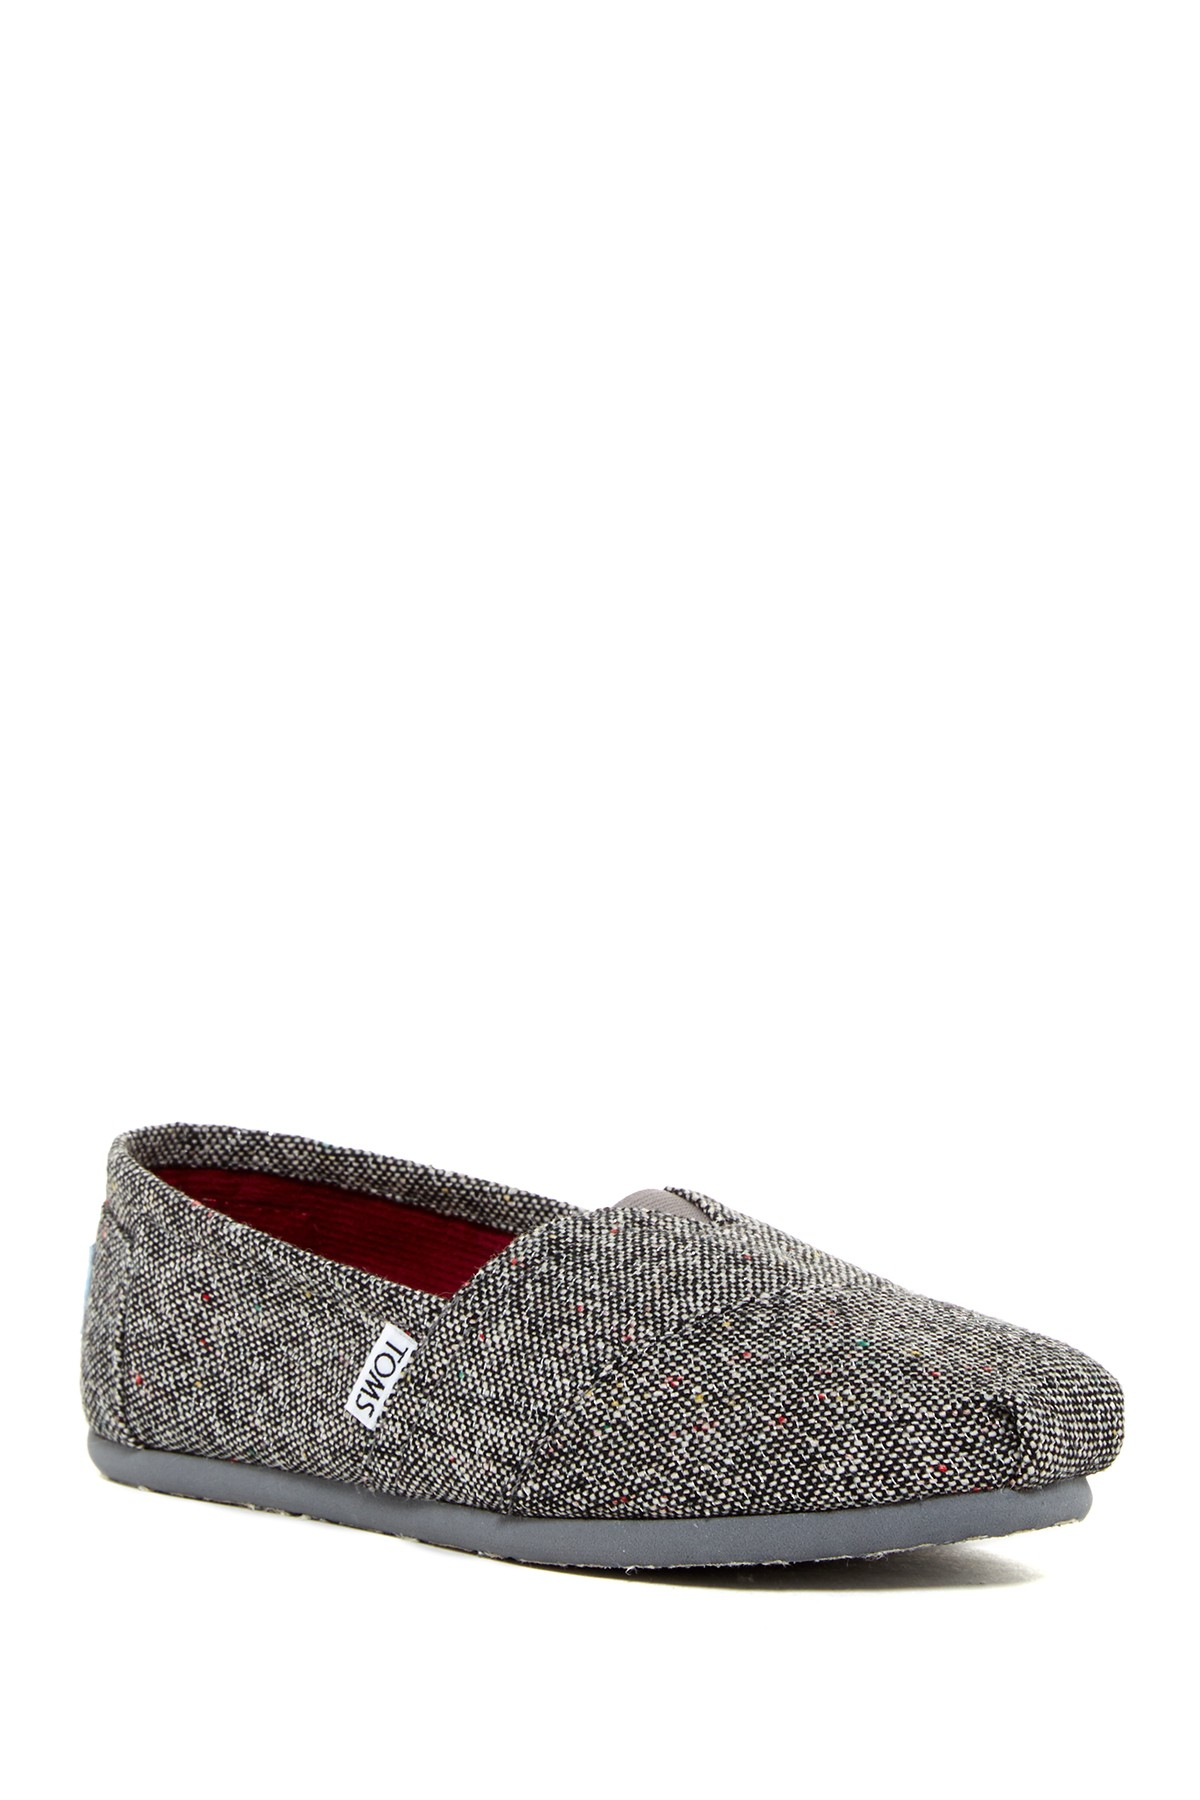 ae60a21f856 Step Into Summer With This Huge TOMS Sale at Nordstrom Rack